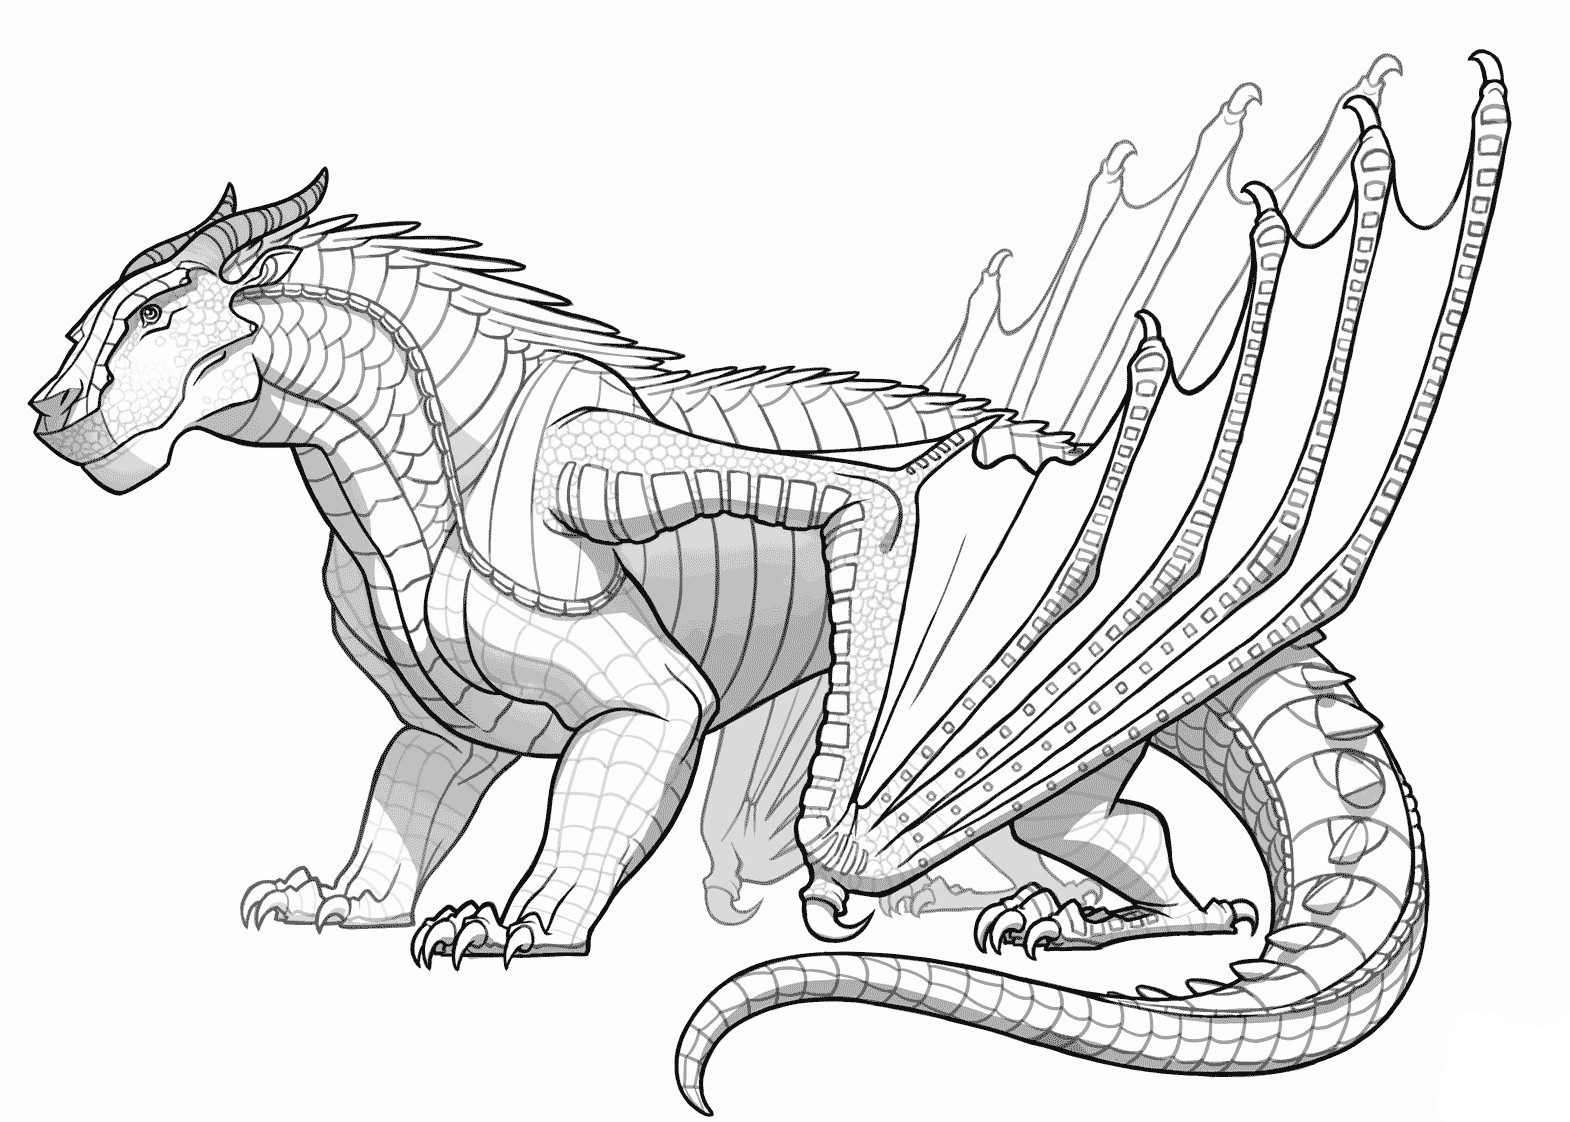 coloring pages dragon coloring pages for adults difficult dragons at getdrawings coloring dragon pages